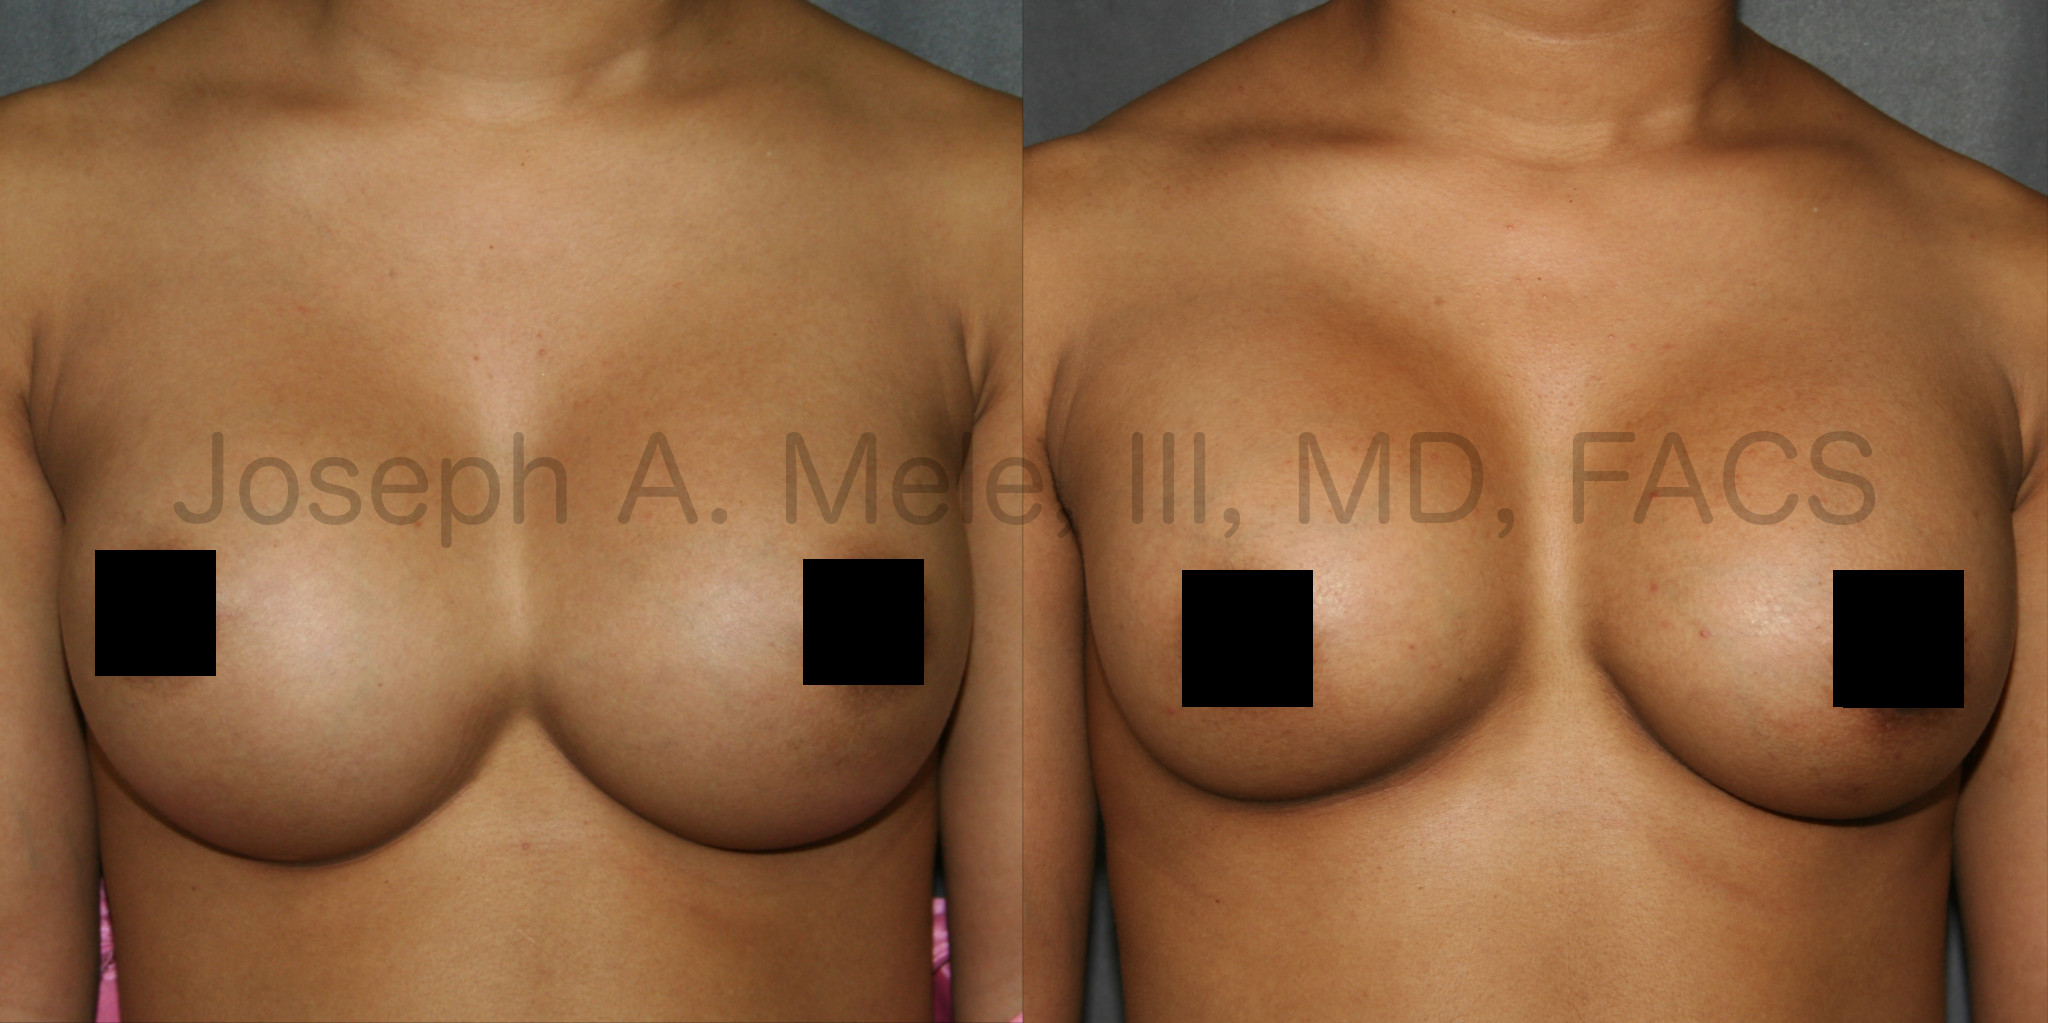 Breast Augmentation Revision for Symmastia (Uniboob) Before and After pictures